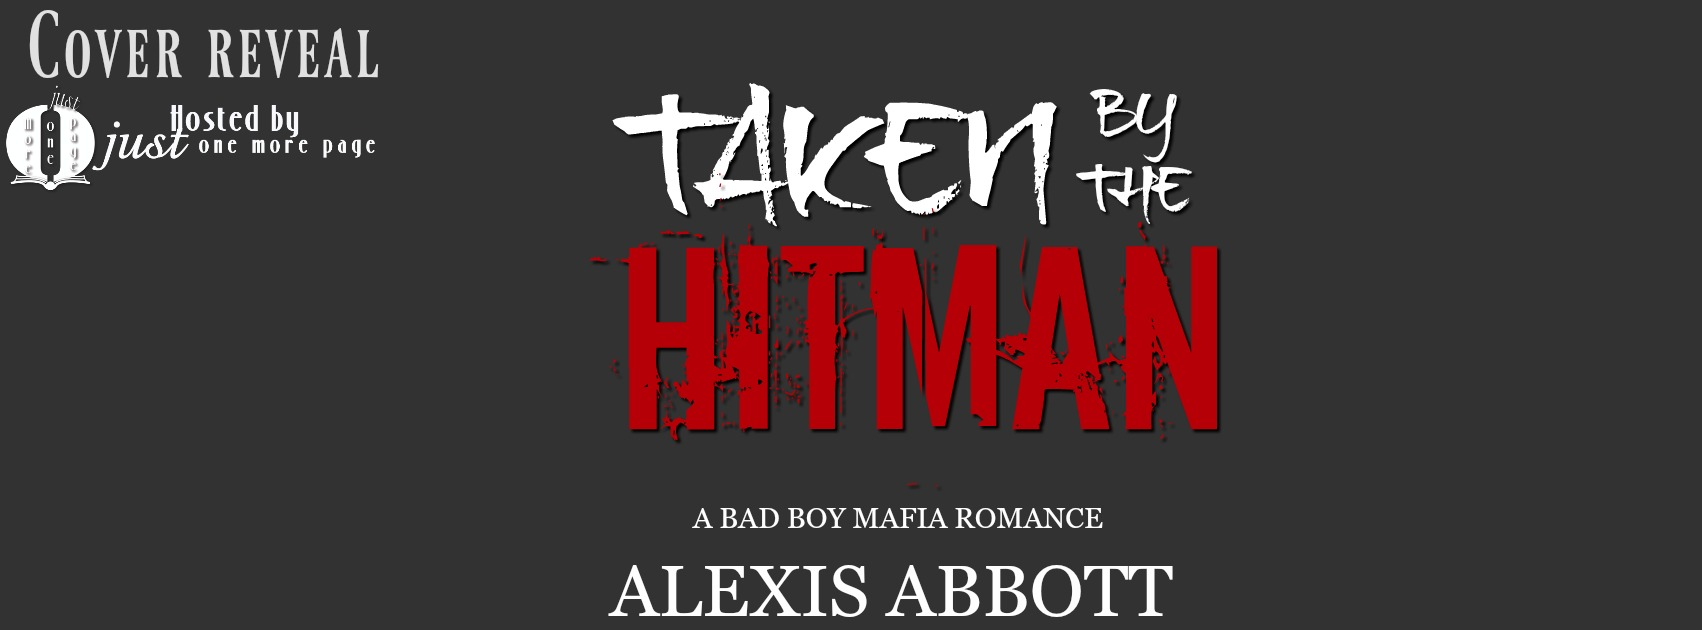 takenbythehitmanreveal